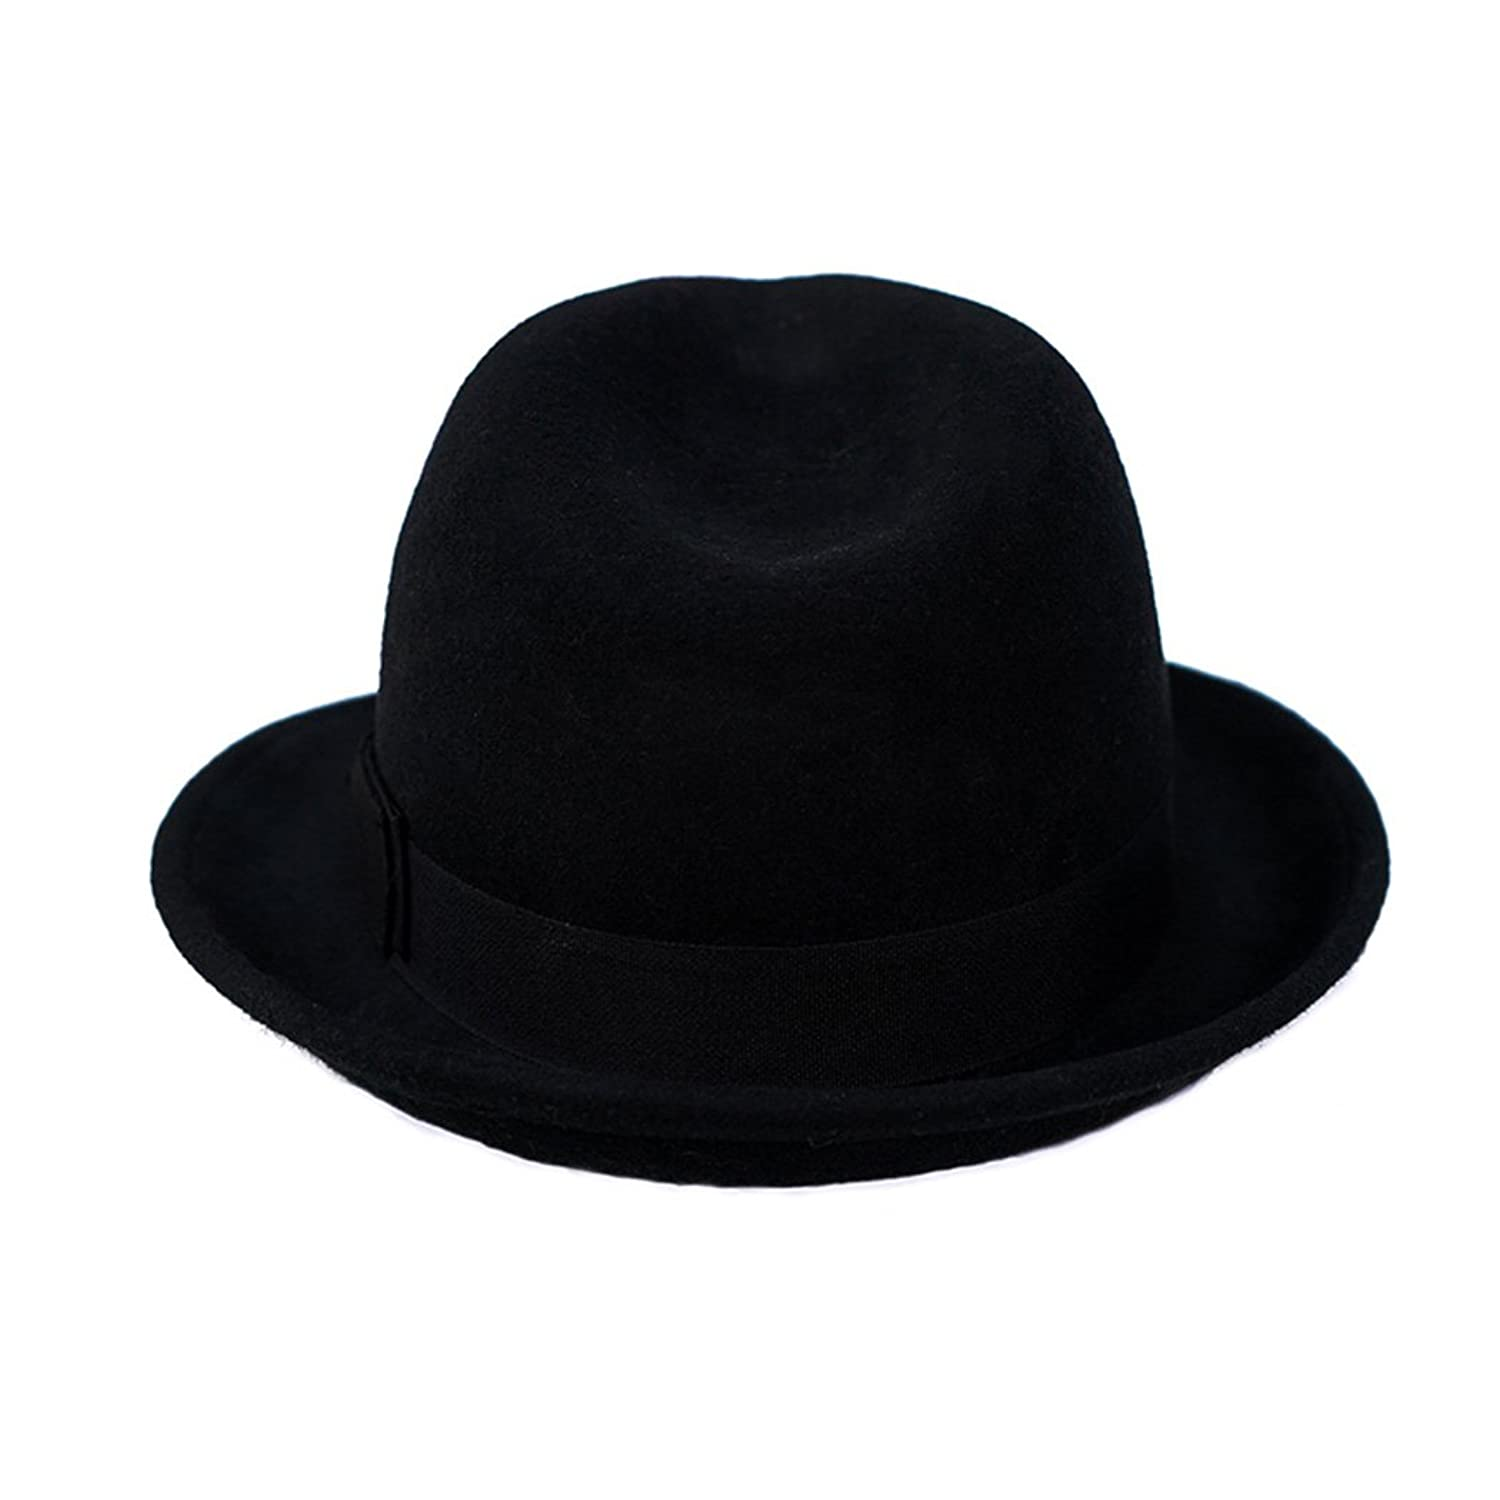 Black Fedora Felt Hat With Ribbon - OS / BLACK I Saw It First C5ERZOuxwz